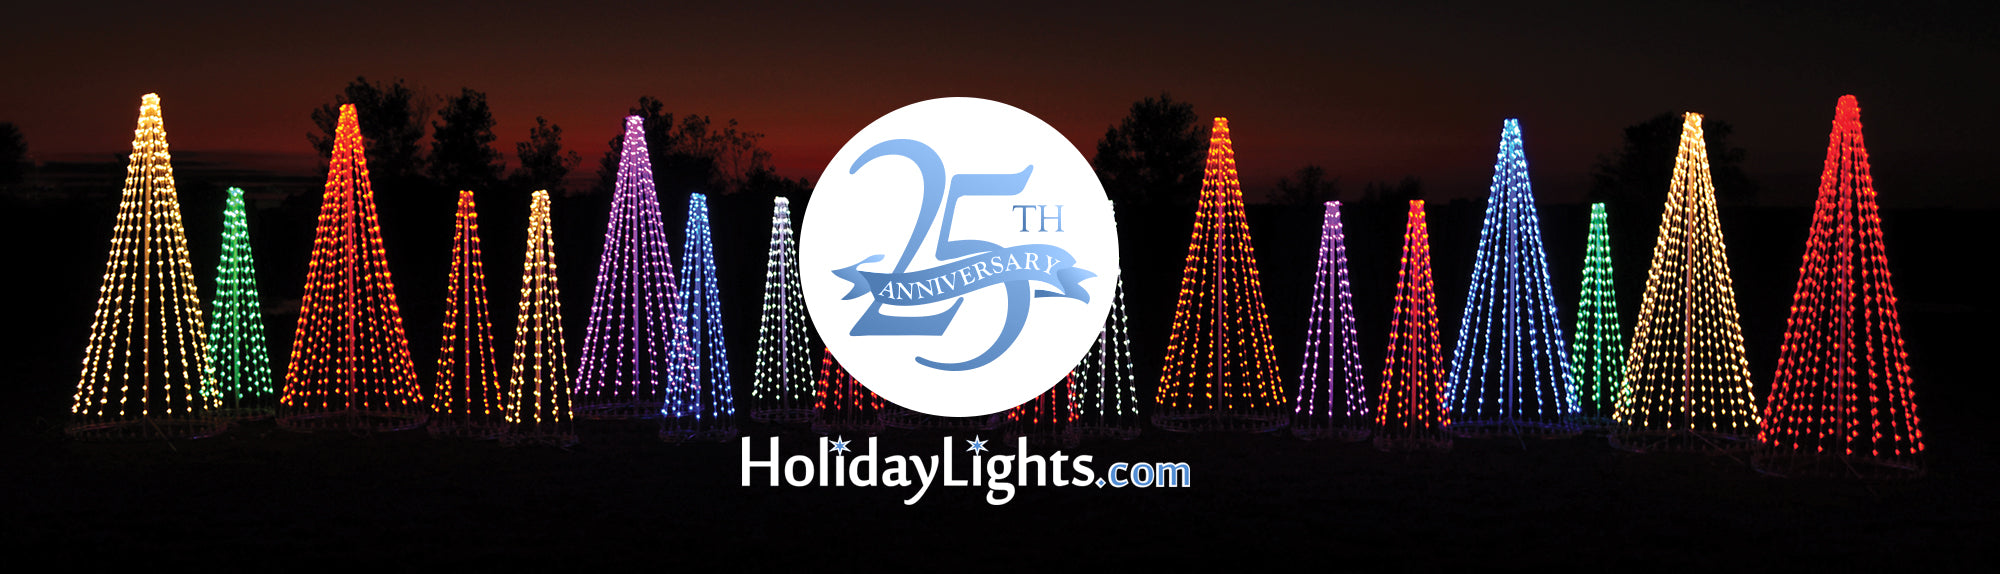 2019 Holiday Lights Display LED Trees Bulbs Strings Commercial Display Christmas Season HolidayLights.com